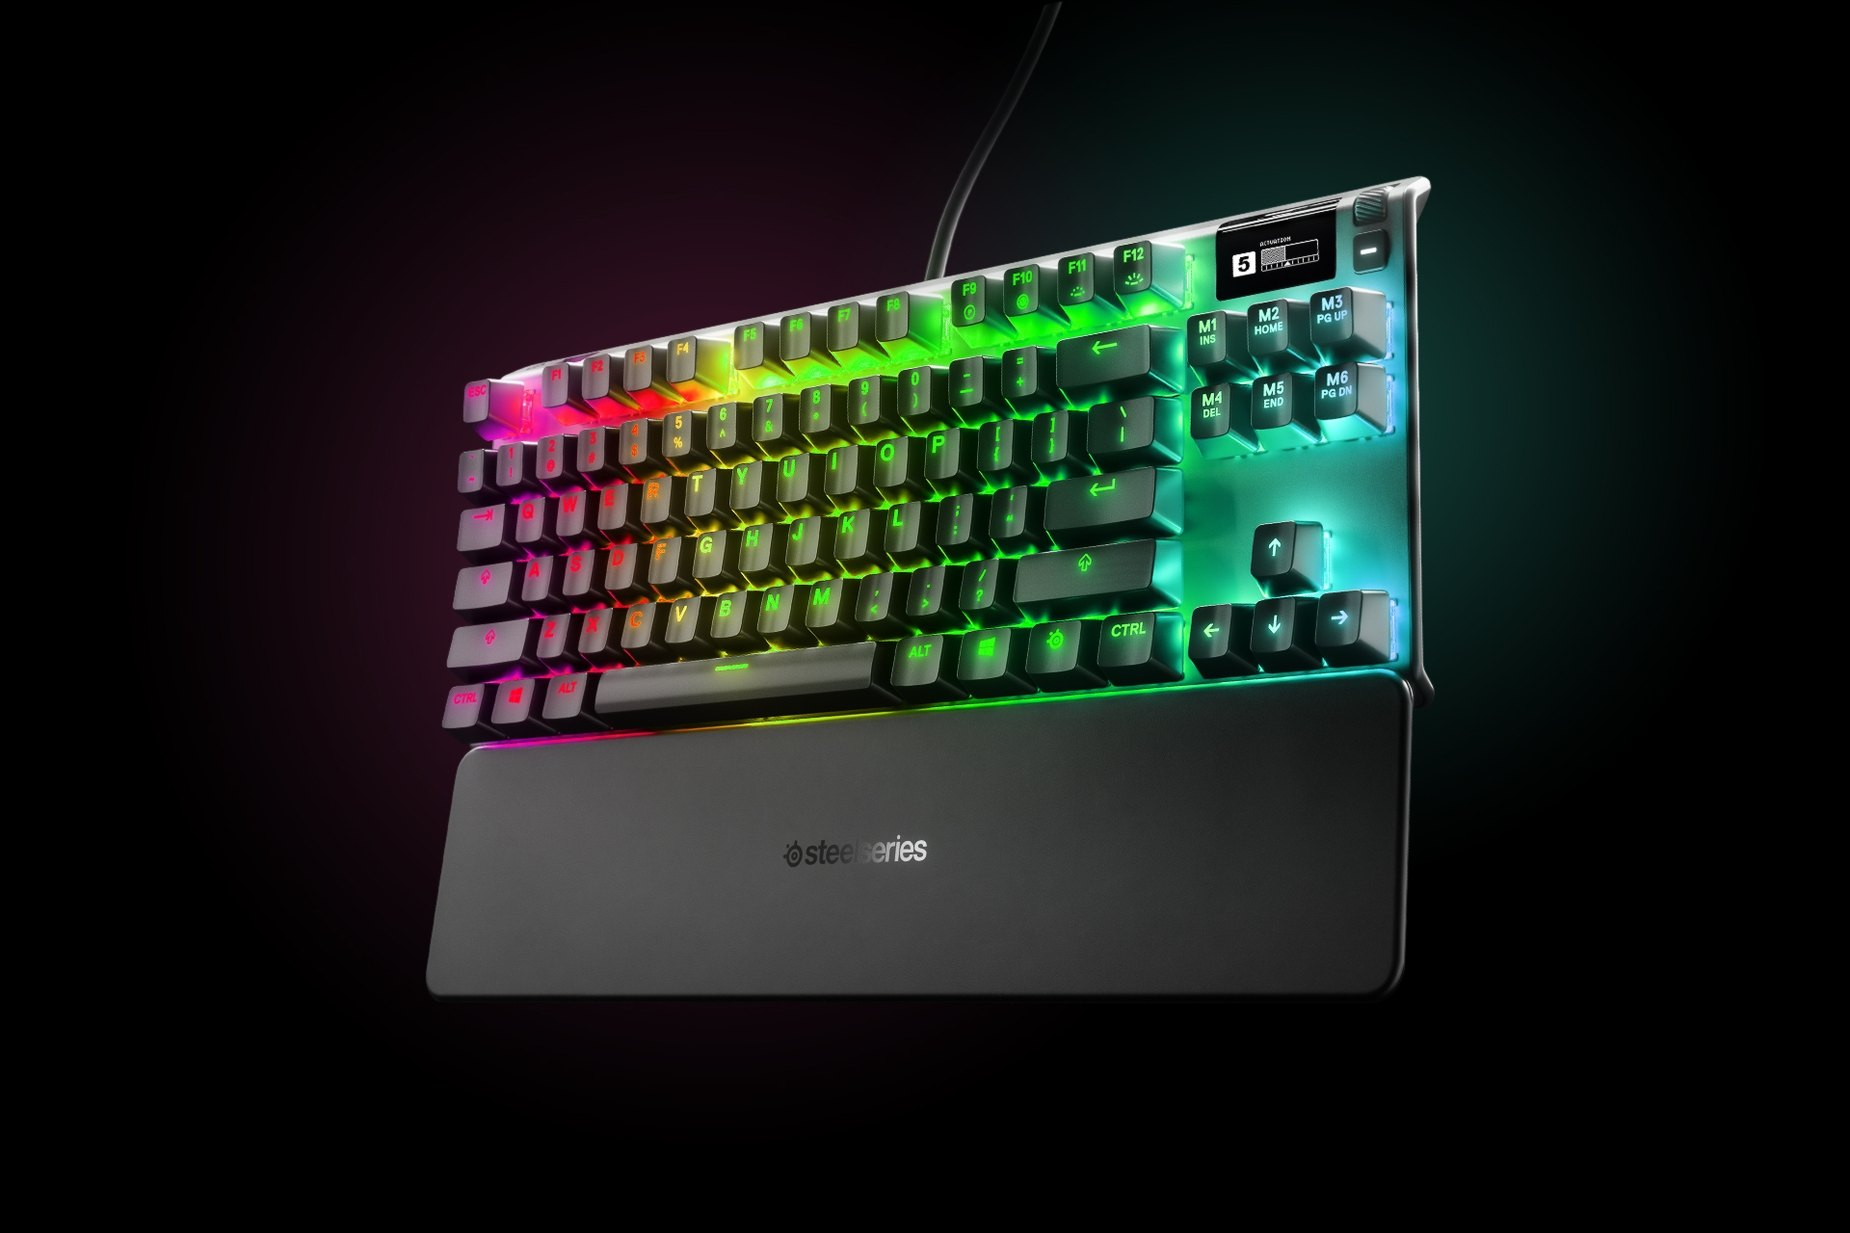 Japanese - Apex Pro TKL gaming keyboard with the illumination lit up on dark background, also shows the OLED screen and controls used to change settings, switch actuation, and adjust audio